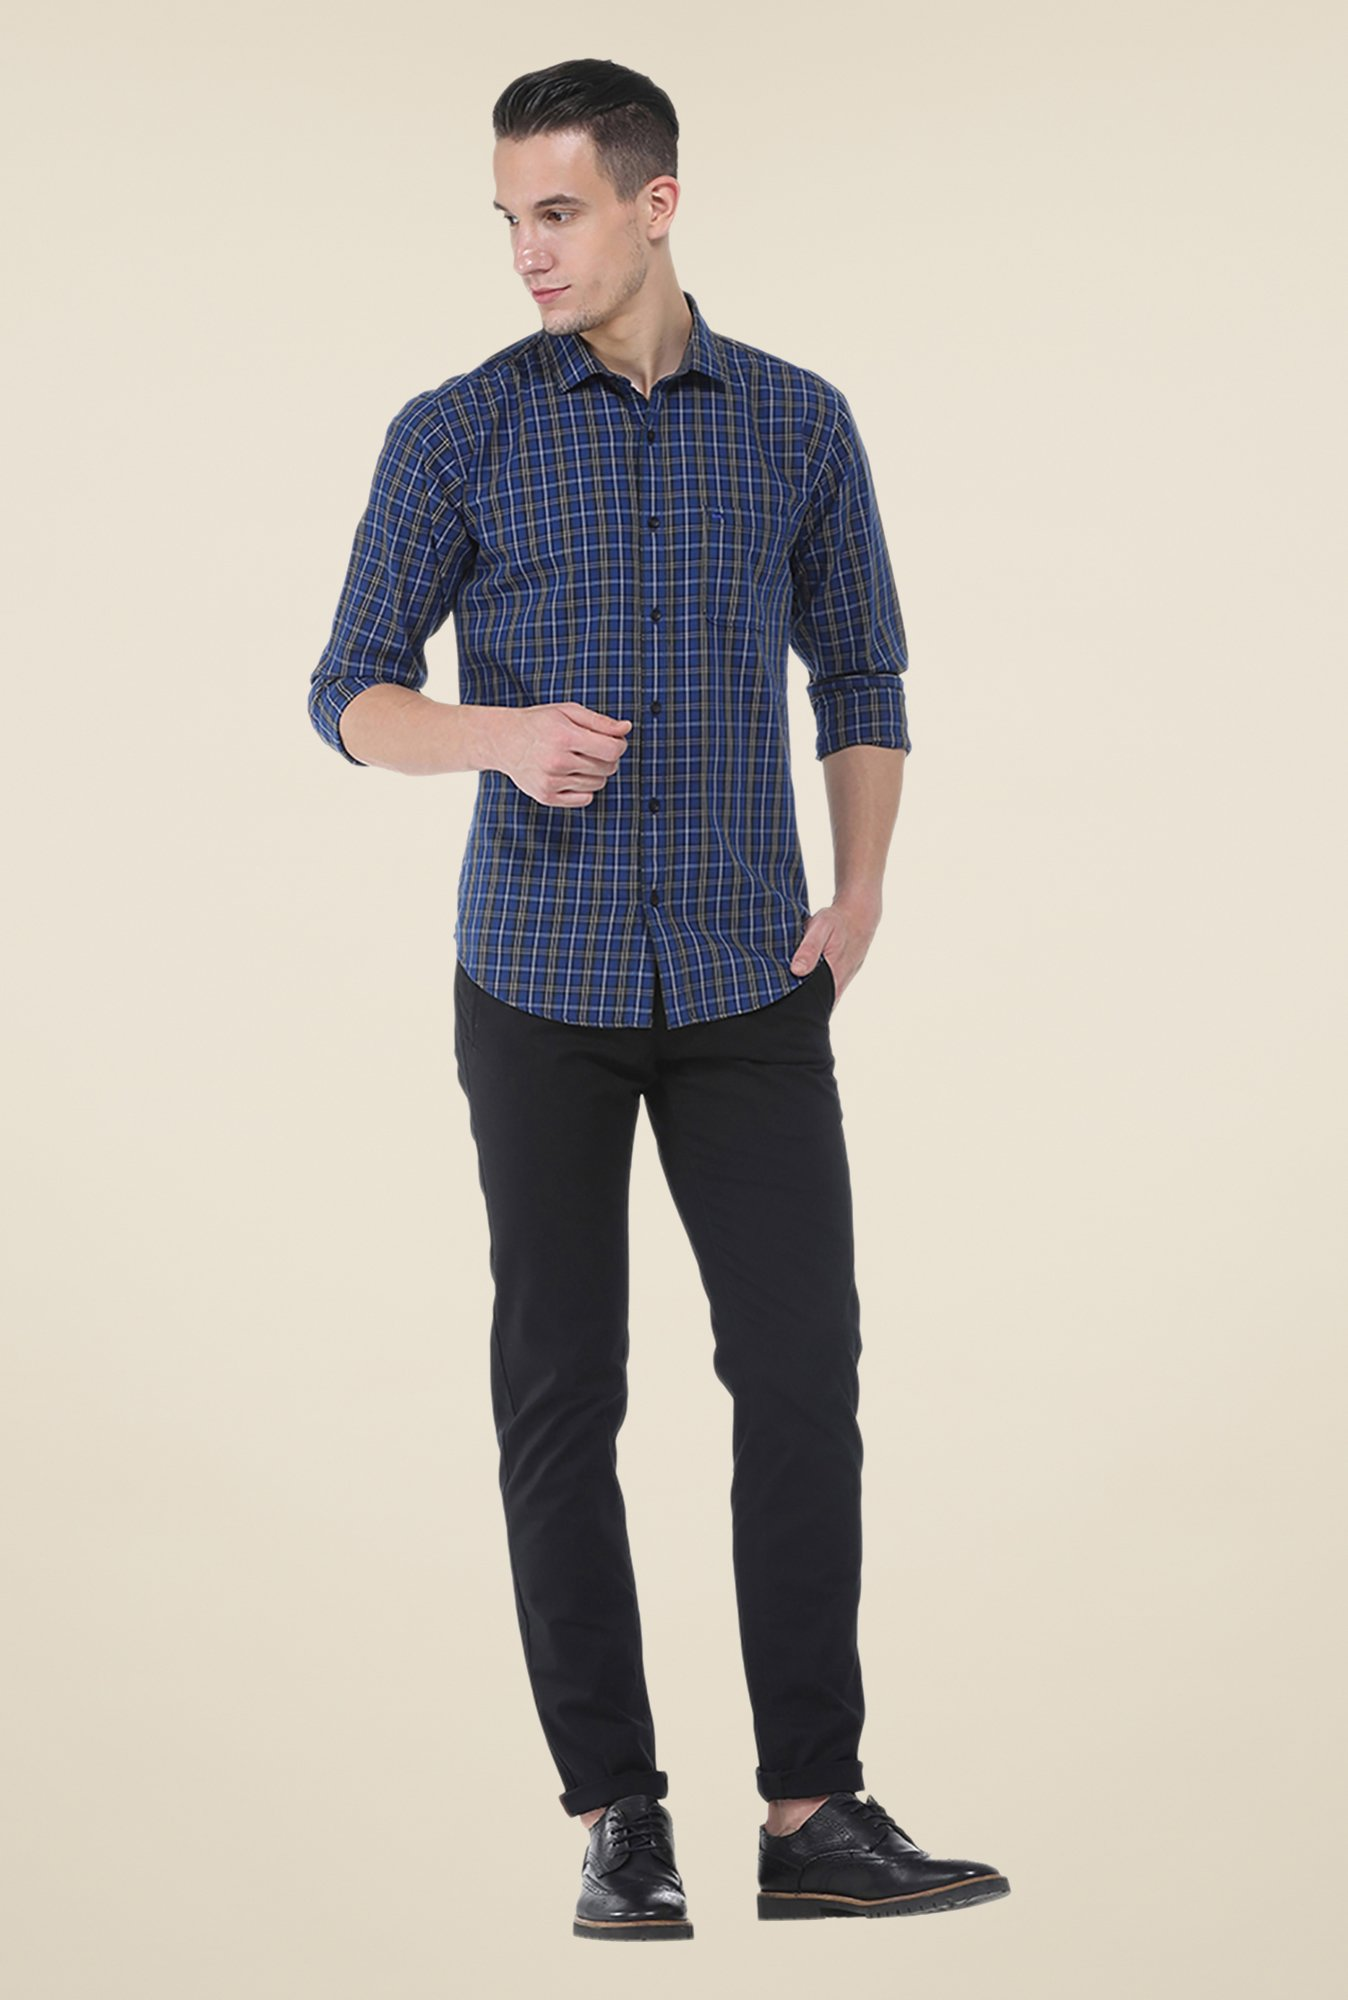 Basics Dark Blue Checks Slim Fit Cotton Shirt